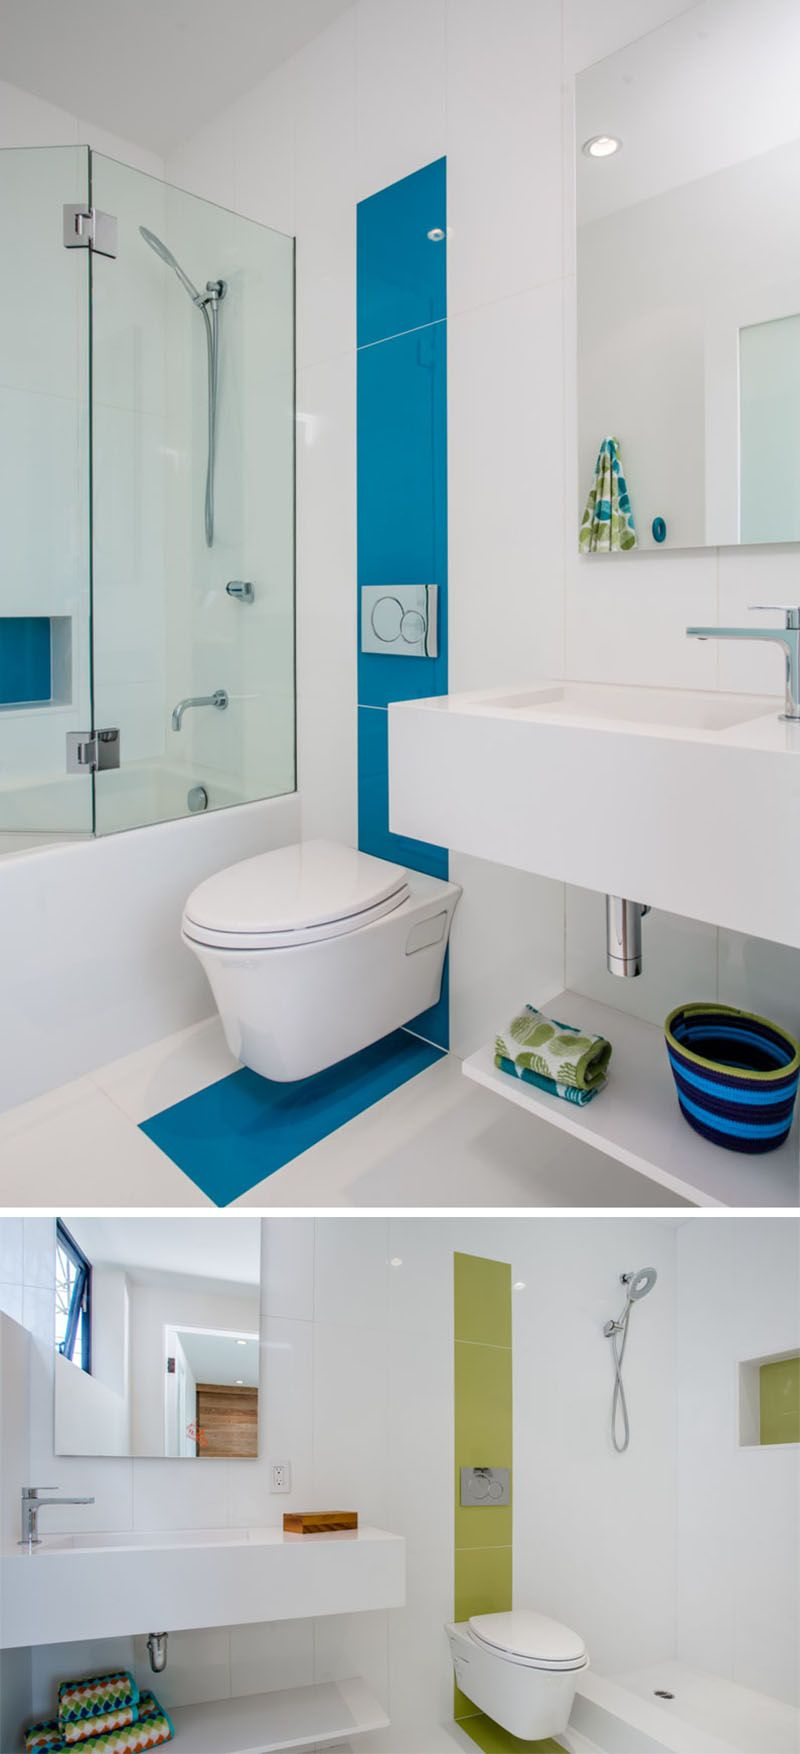 In these all-white tiled bathrooms, colorful tiles have been used to ...